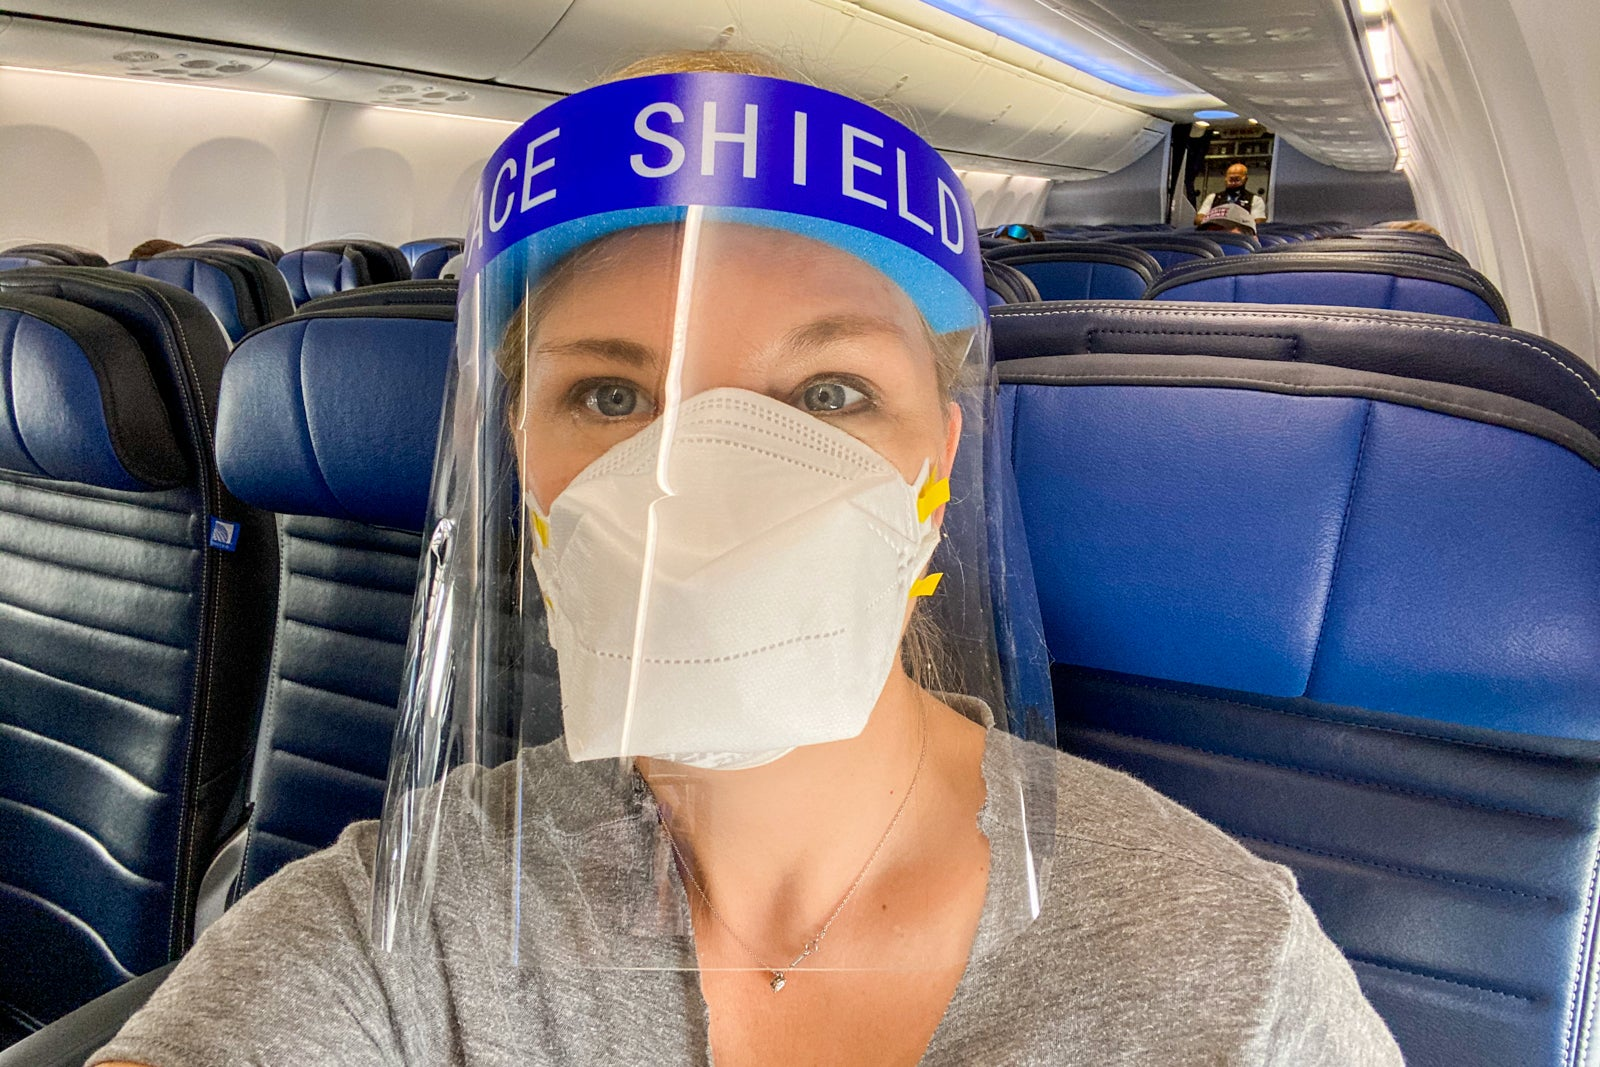 Why I declined first class upgrades during the pandemic